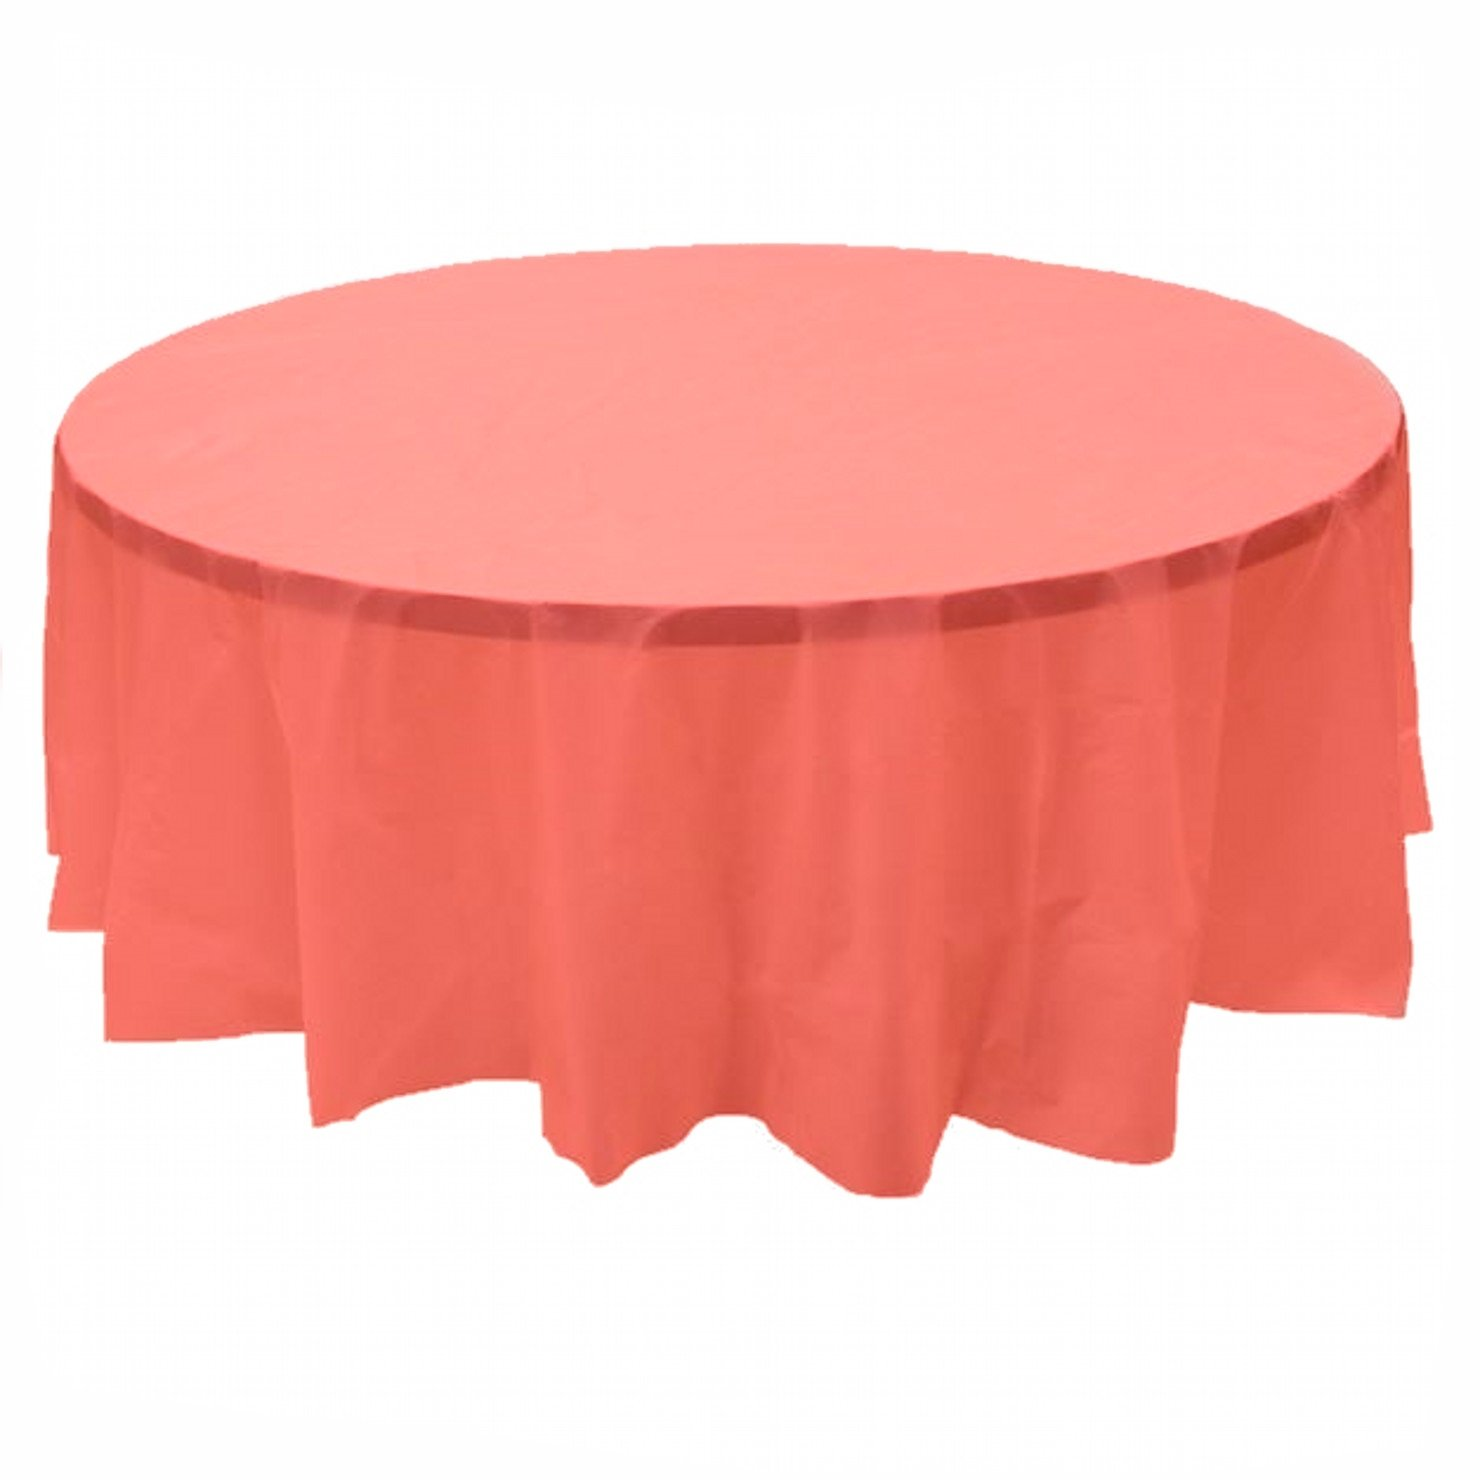 24 pcs (1 case) of Plastic Heavy Duty Premium Round tablecloths 84'' Diameter Table Cover - Coral